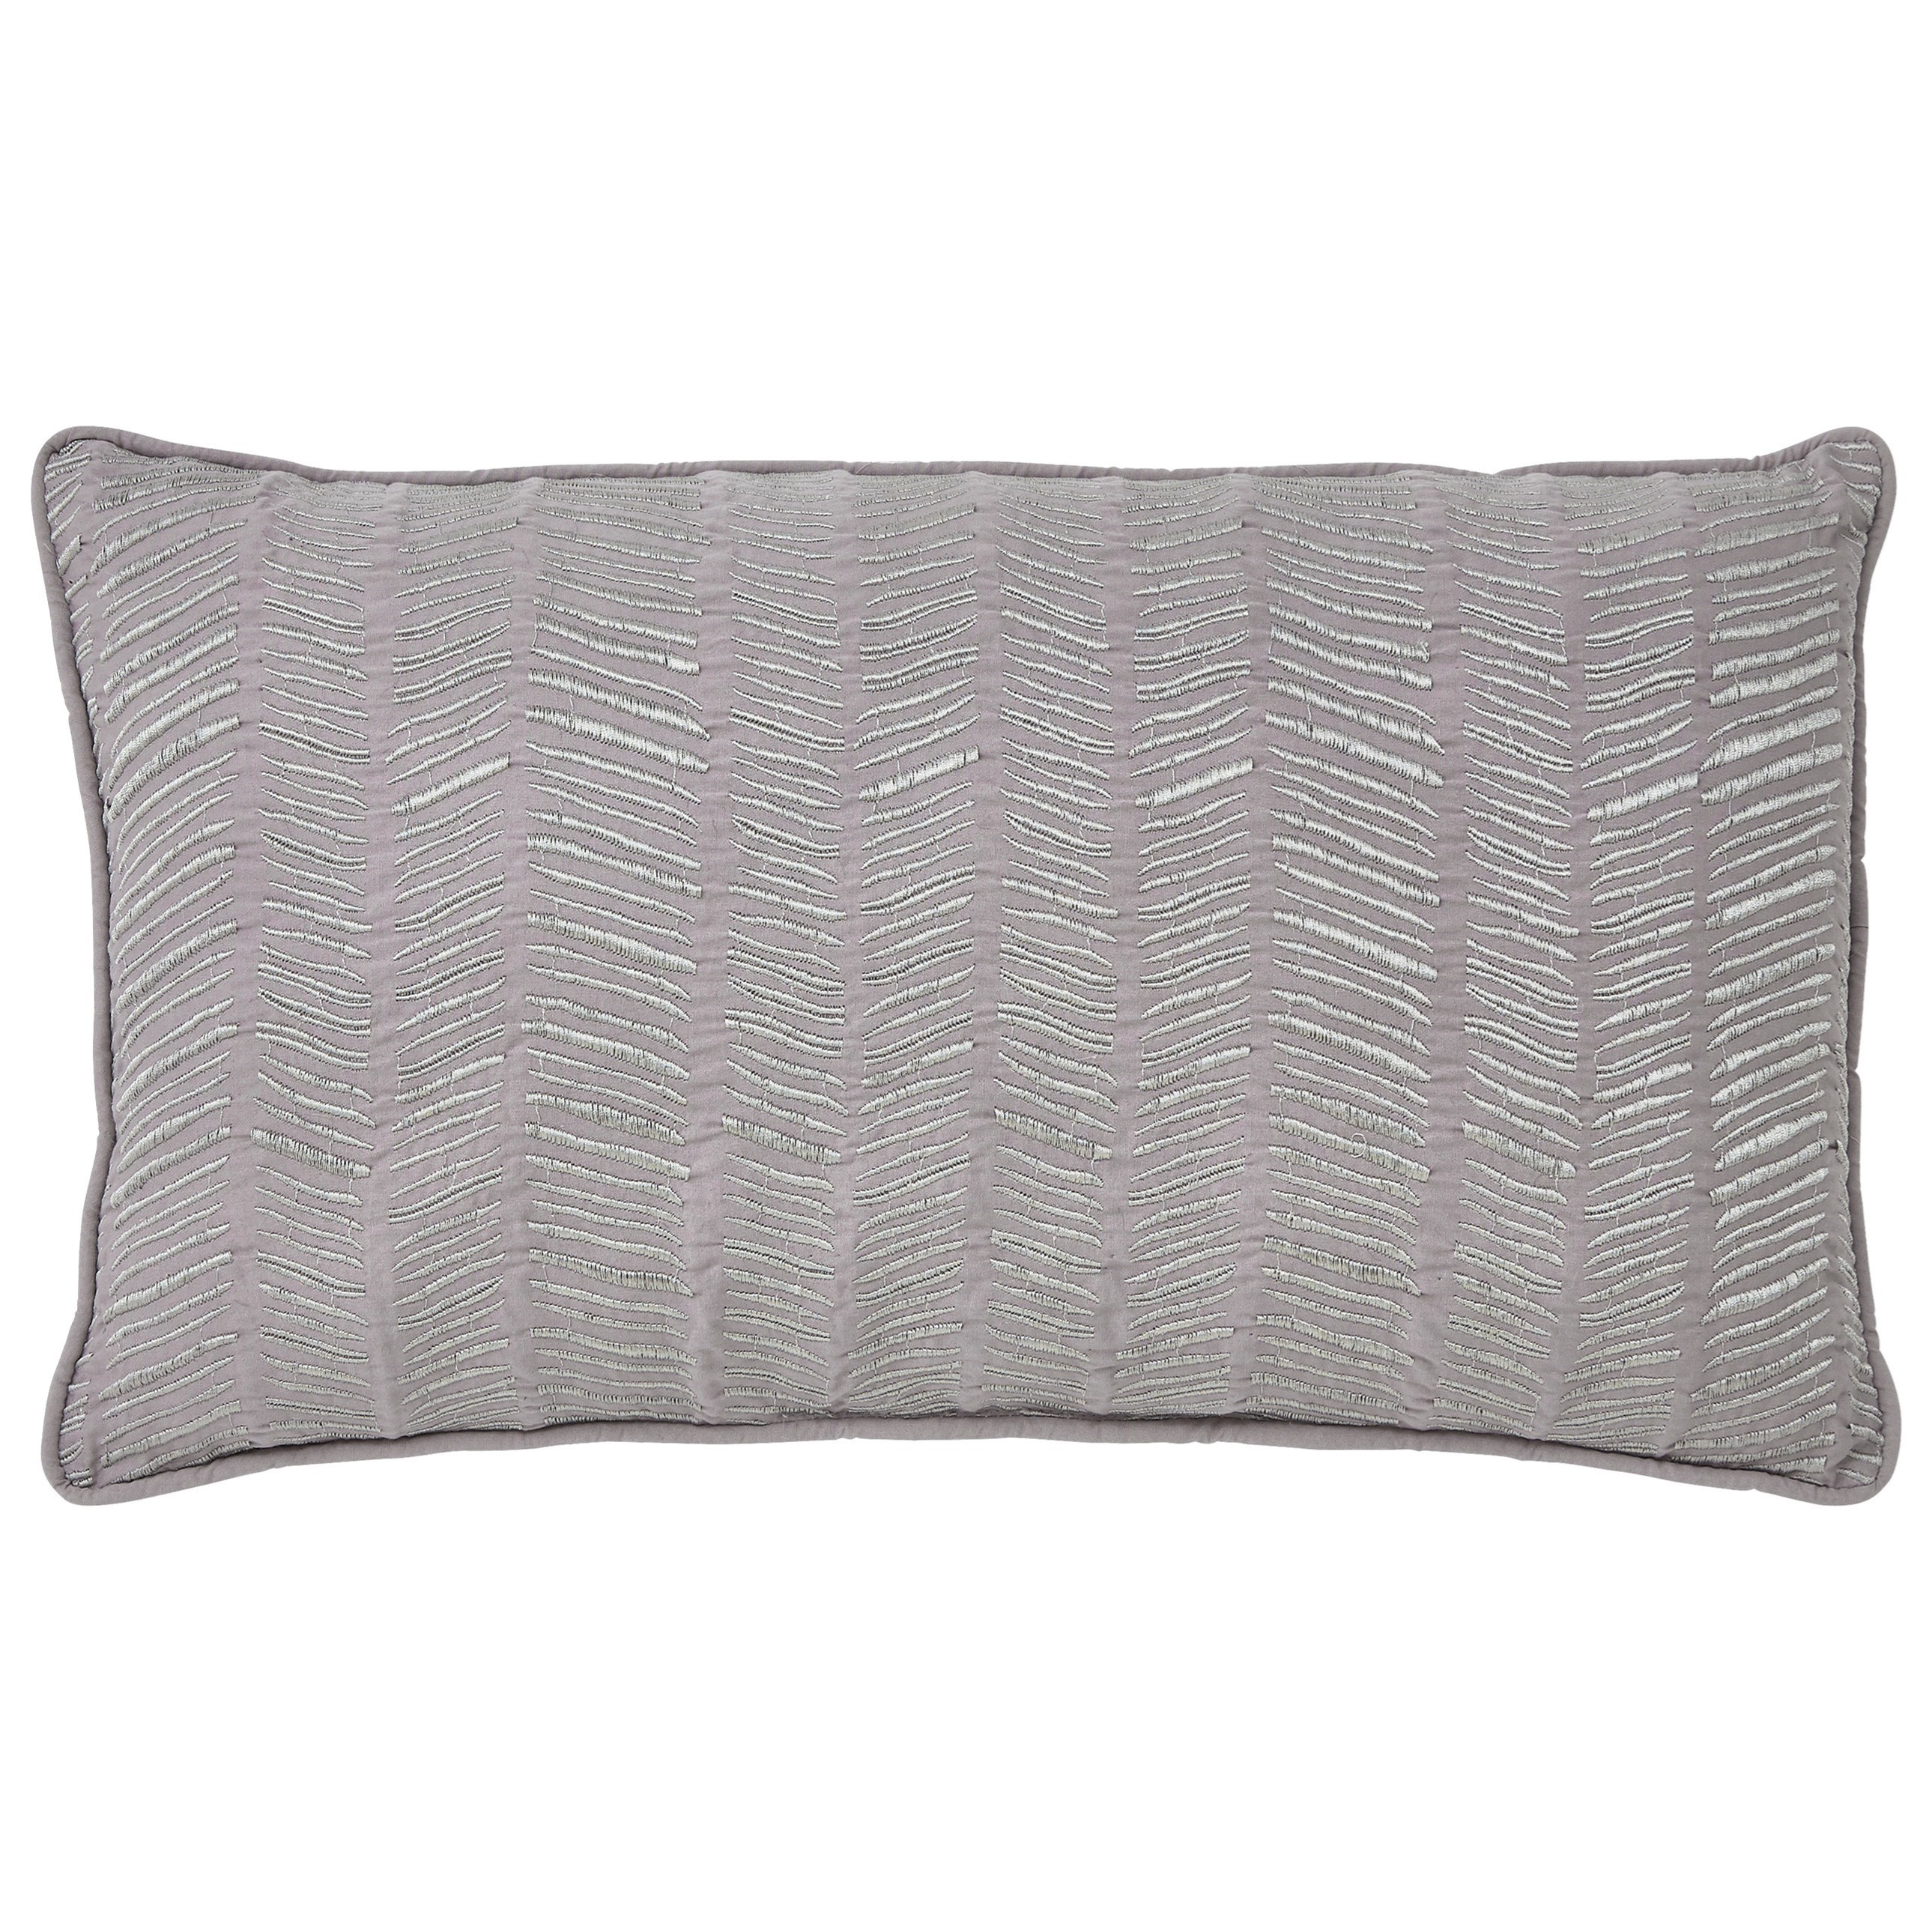 Signature Design by Ashley Pillows Canton - Gray Lumbar Pillow - Item Number: A1000330P